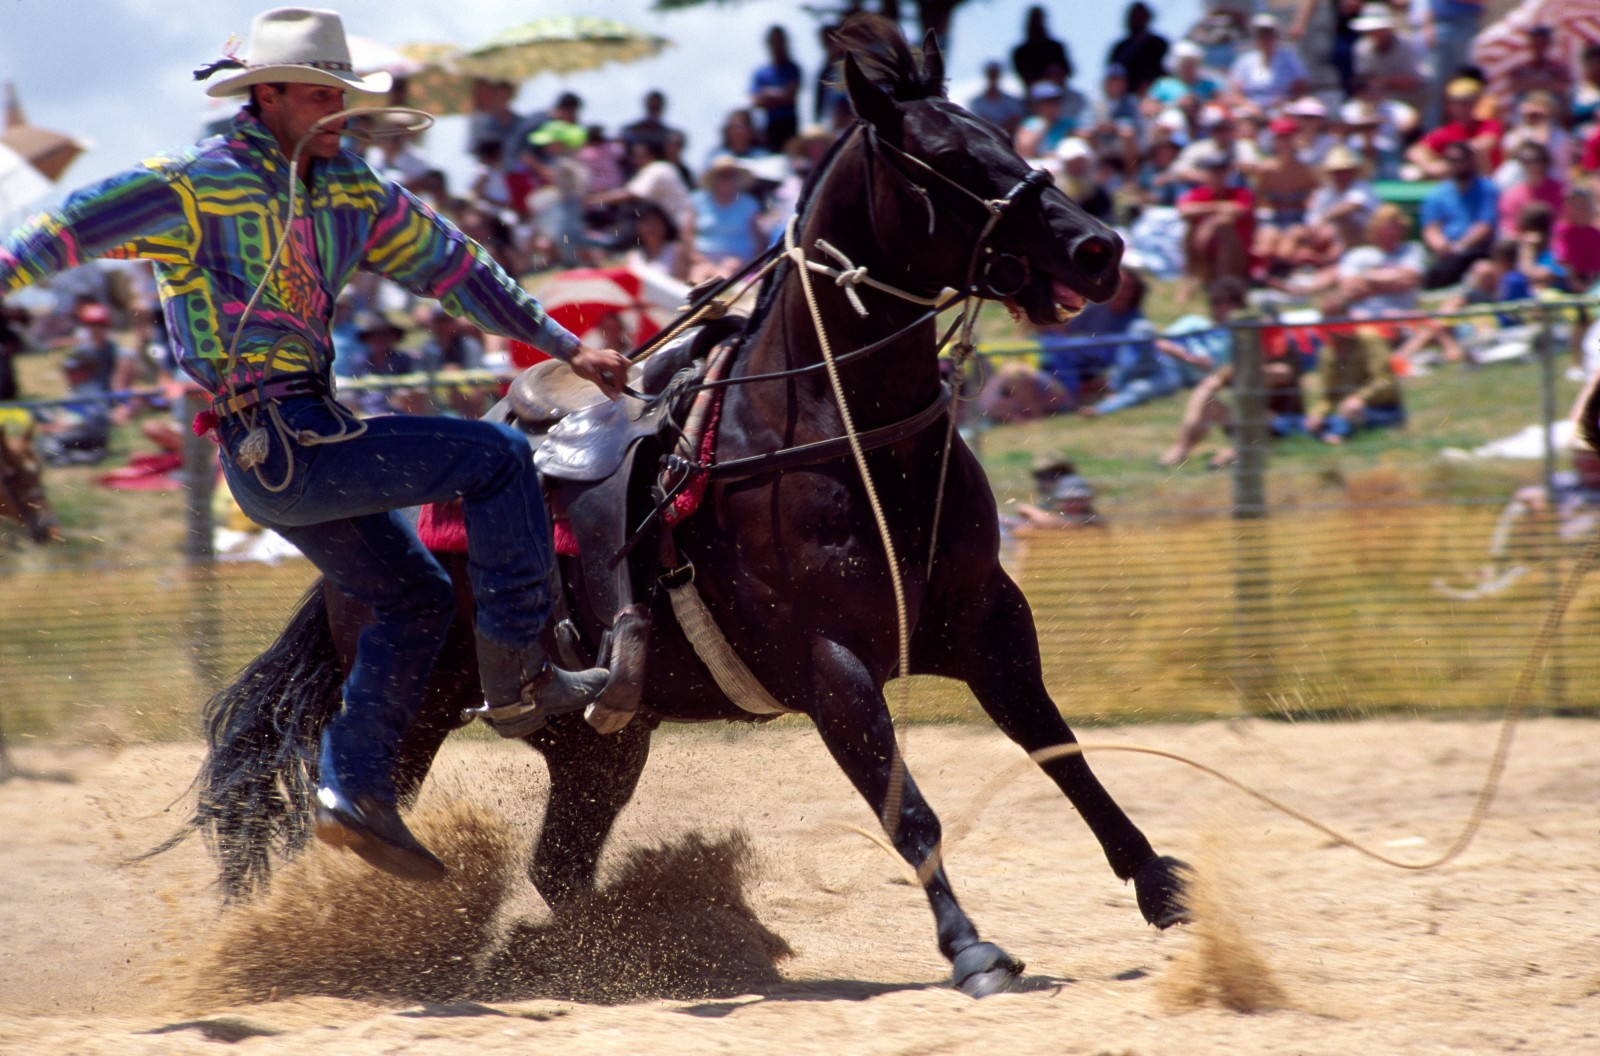 All the skills of the cowboy are marshalled for the calf-roping event. Mastery of the mount, split-second timing and a deadly eye combine in a slow-motion dance that, for an expert, lasts a mere ten seconds or less. Rex Church (left), a past New Zealand bareback champion, slips deftly from his horse to haul up on his lasso; Linsay Taylor (above), holder of the current calf-roping record, executes a perfect throw.